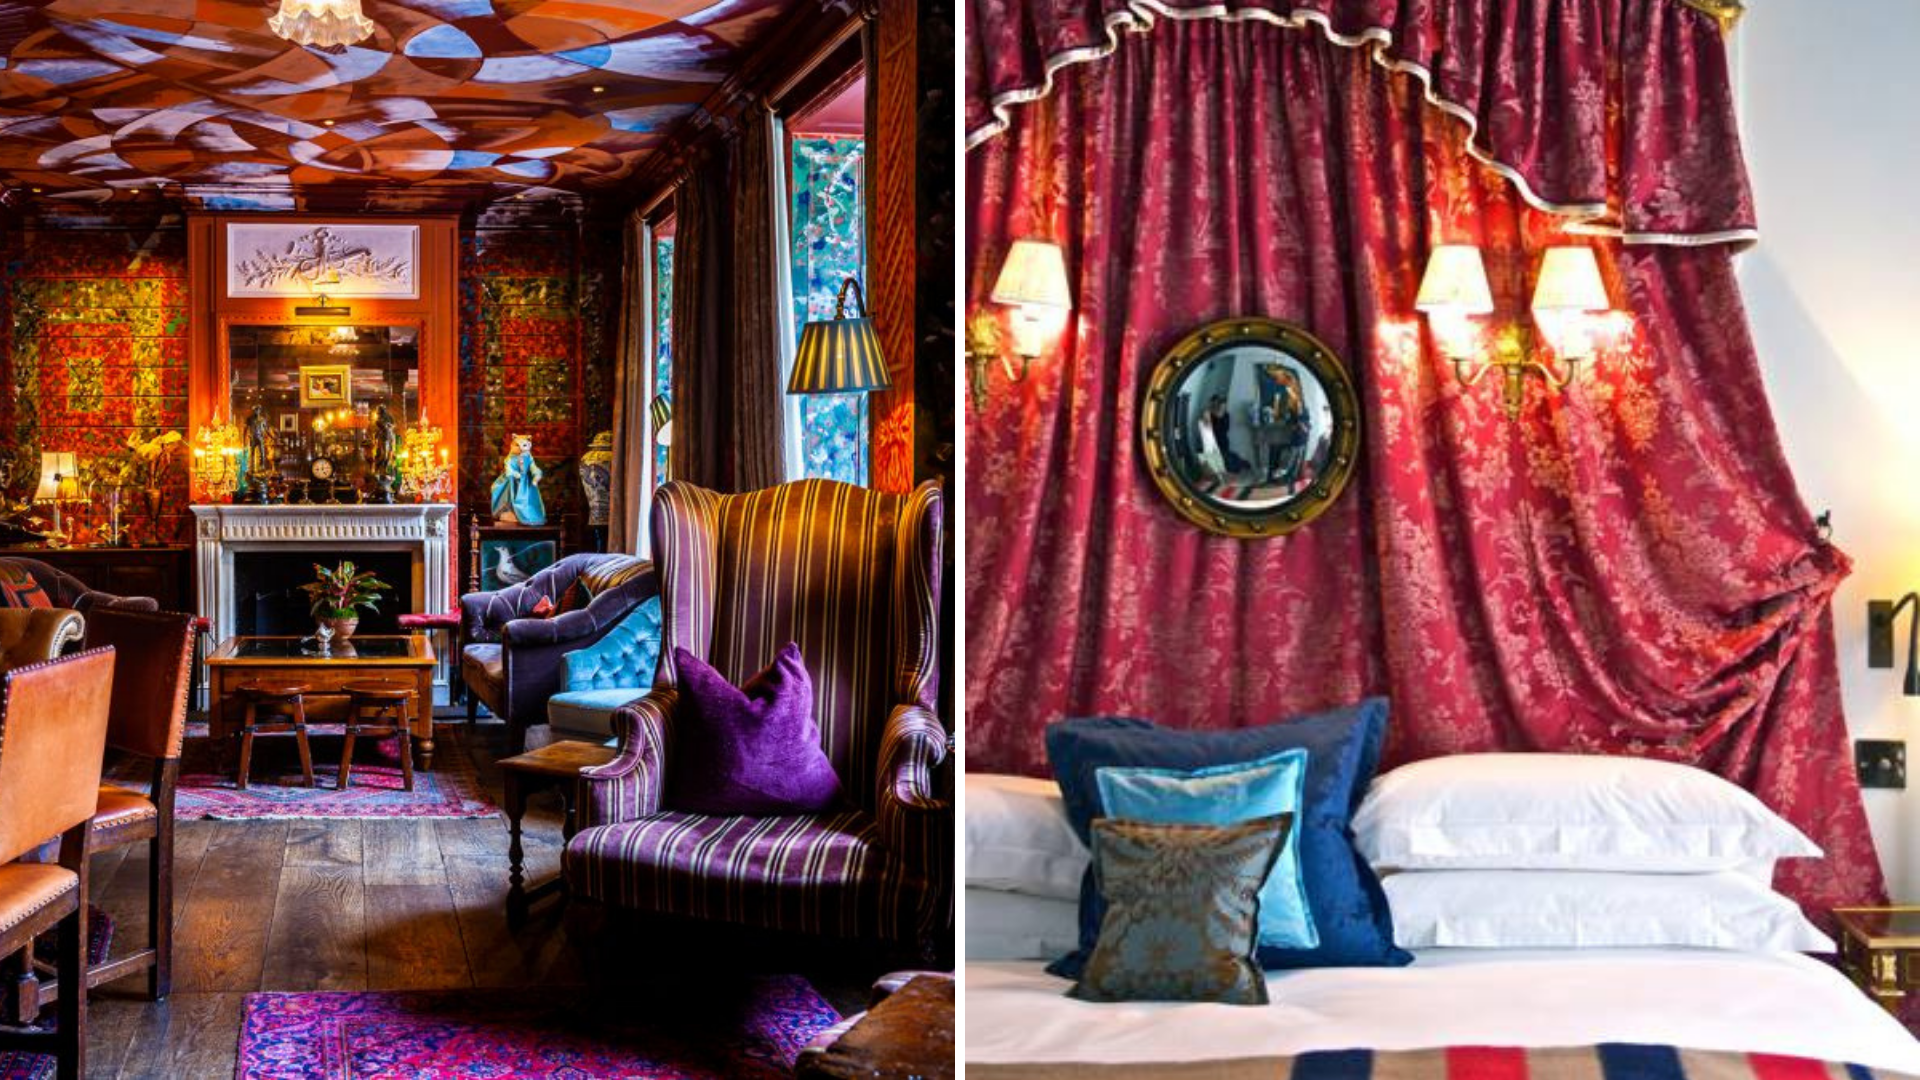 The Zetter townhouse in Clerkenwell bar and bedroom.